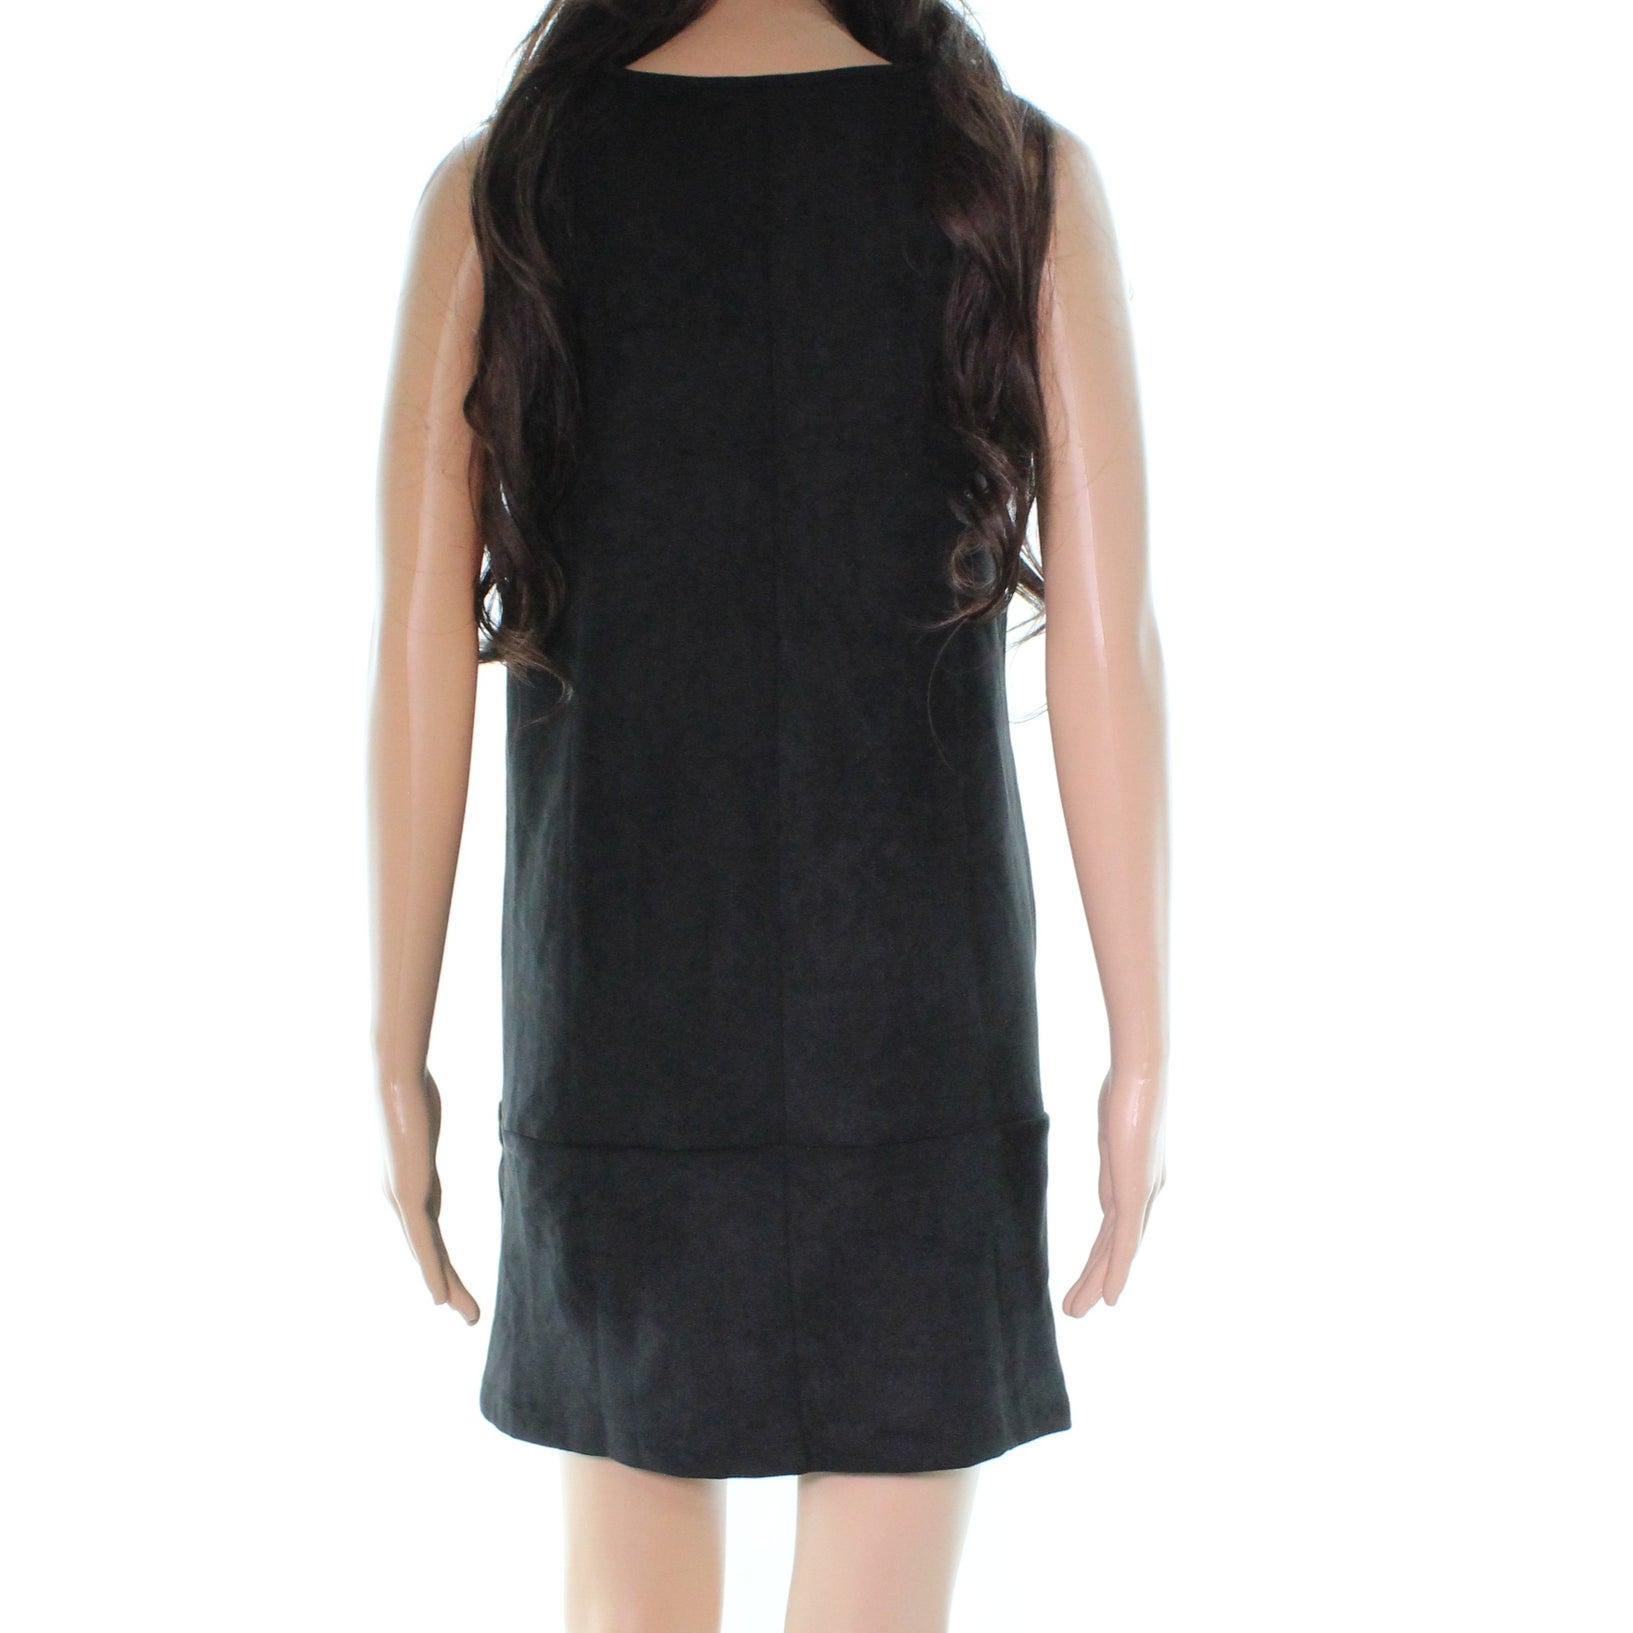 f785a5231a34 Shop Bishop + Young Faux Suede Women s Small Shift Dress - Free Shipping  Today - Overstock - 27986159